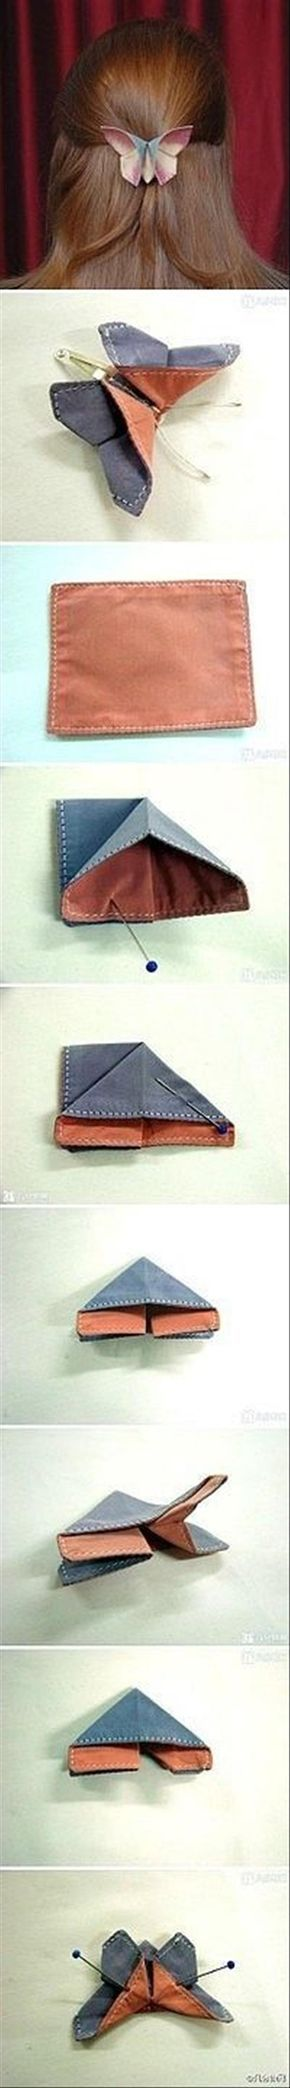 Fun do it yourself craft ideas 48 pics crafts pinterest fun do it yourself craft ideas 48 pics solutioingenieria Image collections